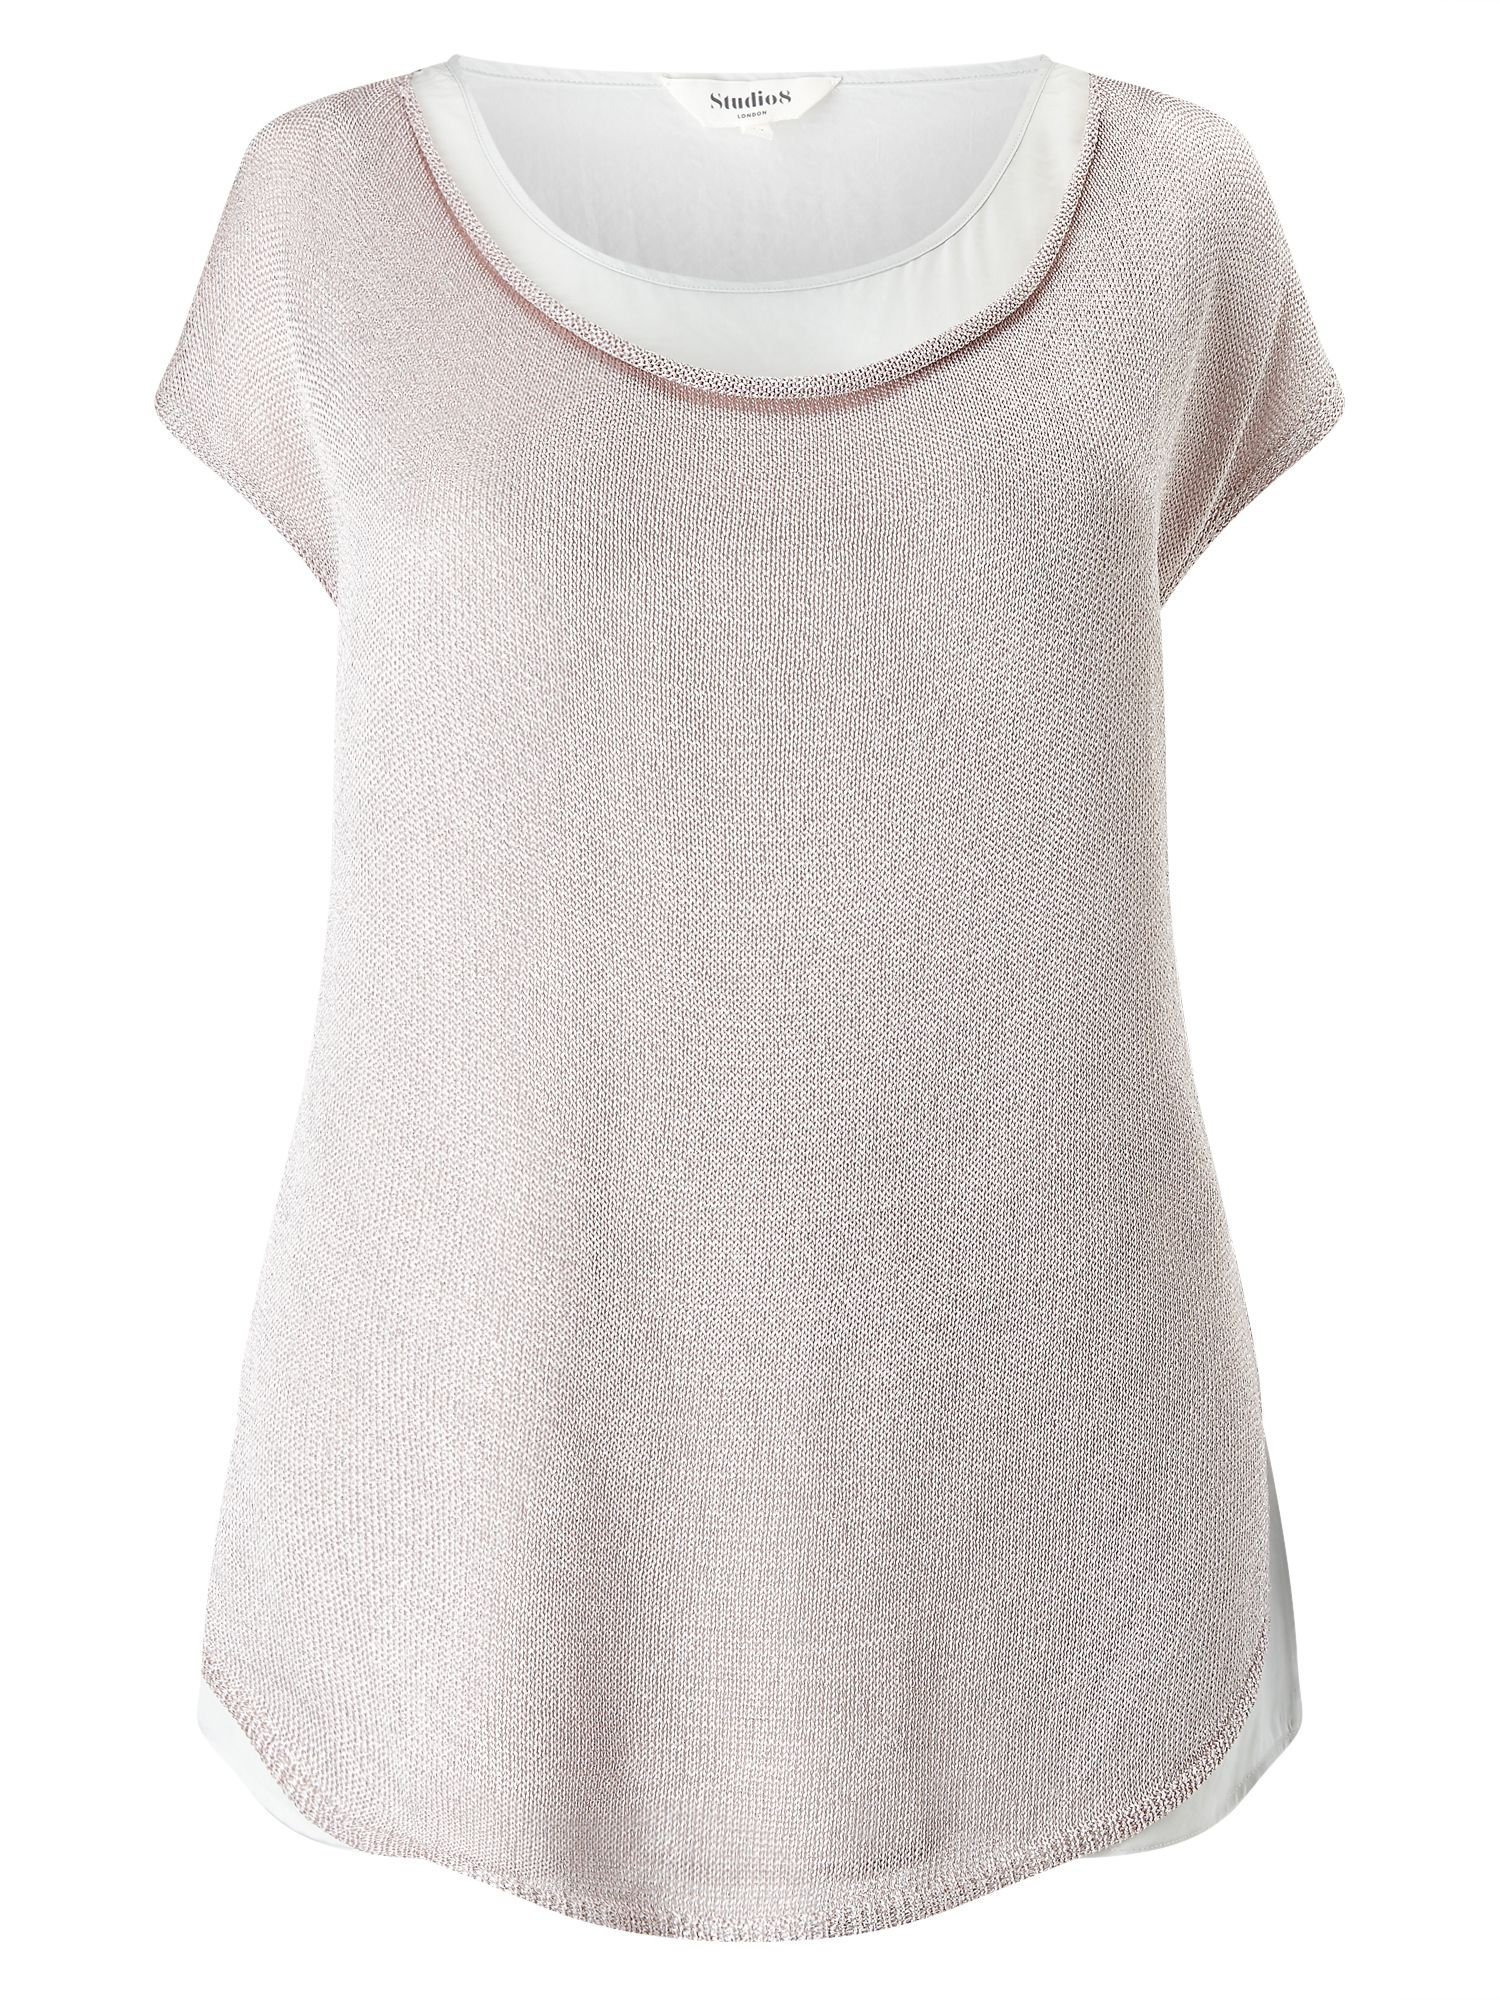 Studio 8 Rhian Knit Top, Pink